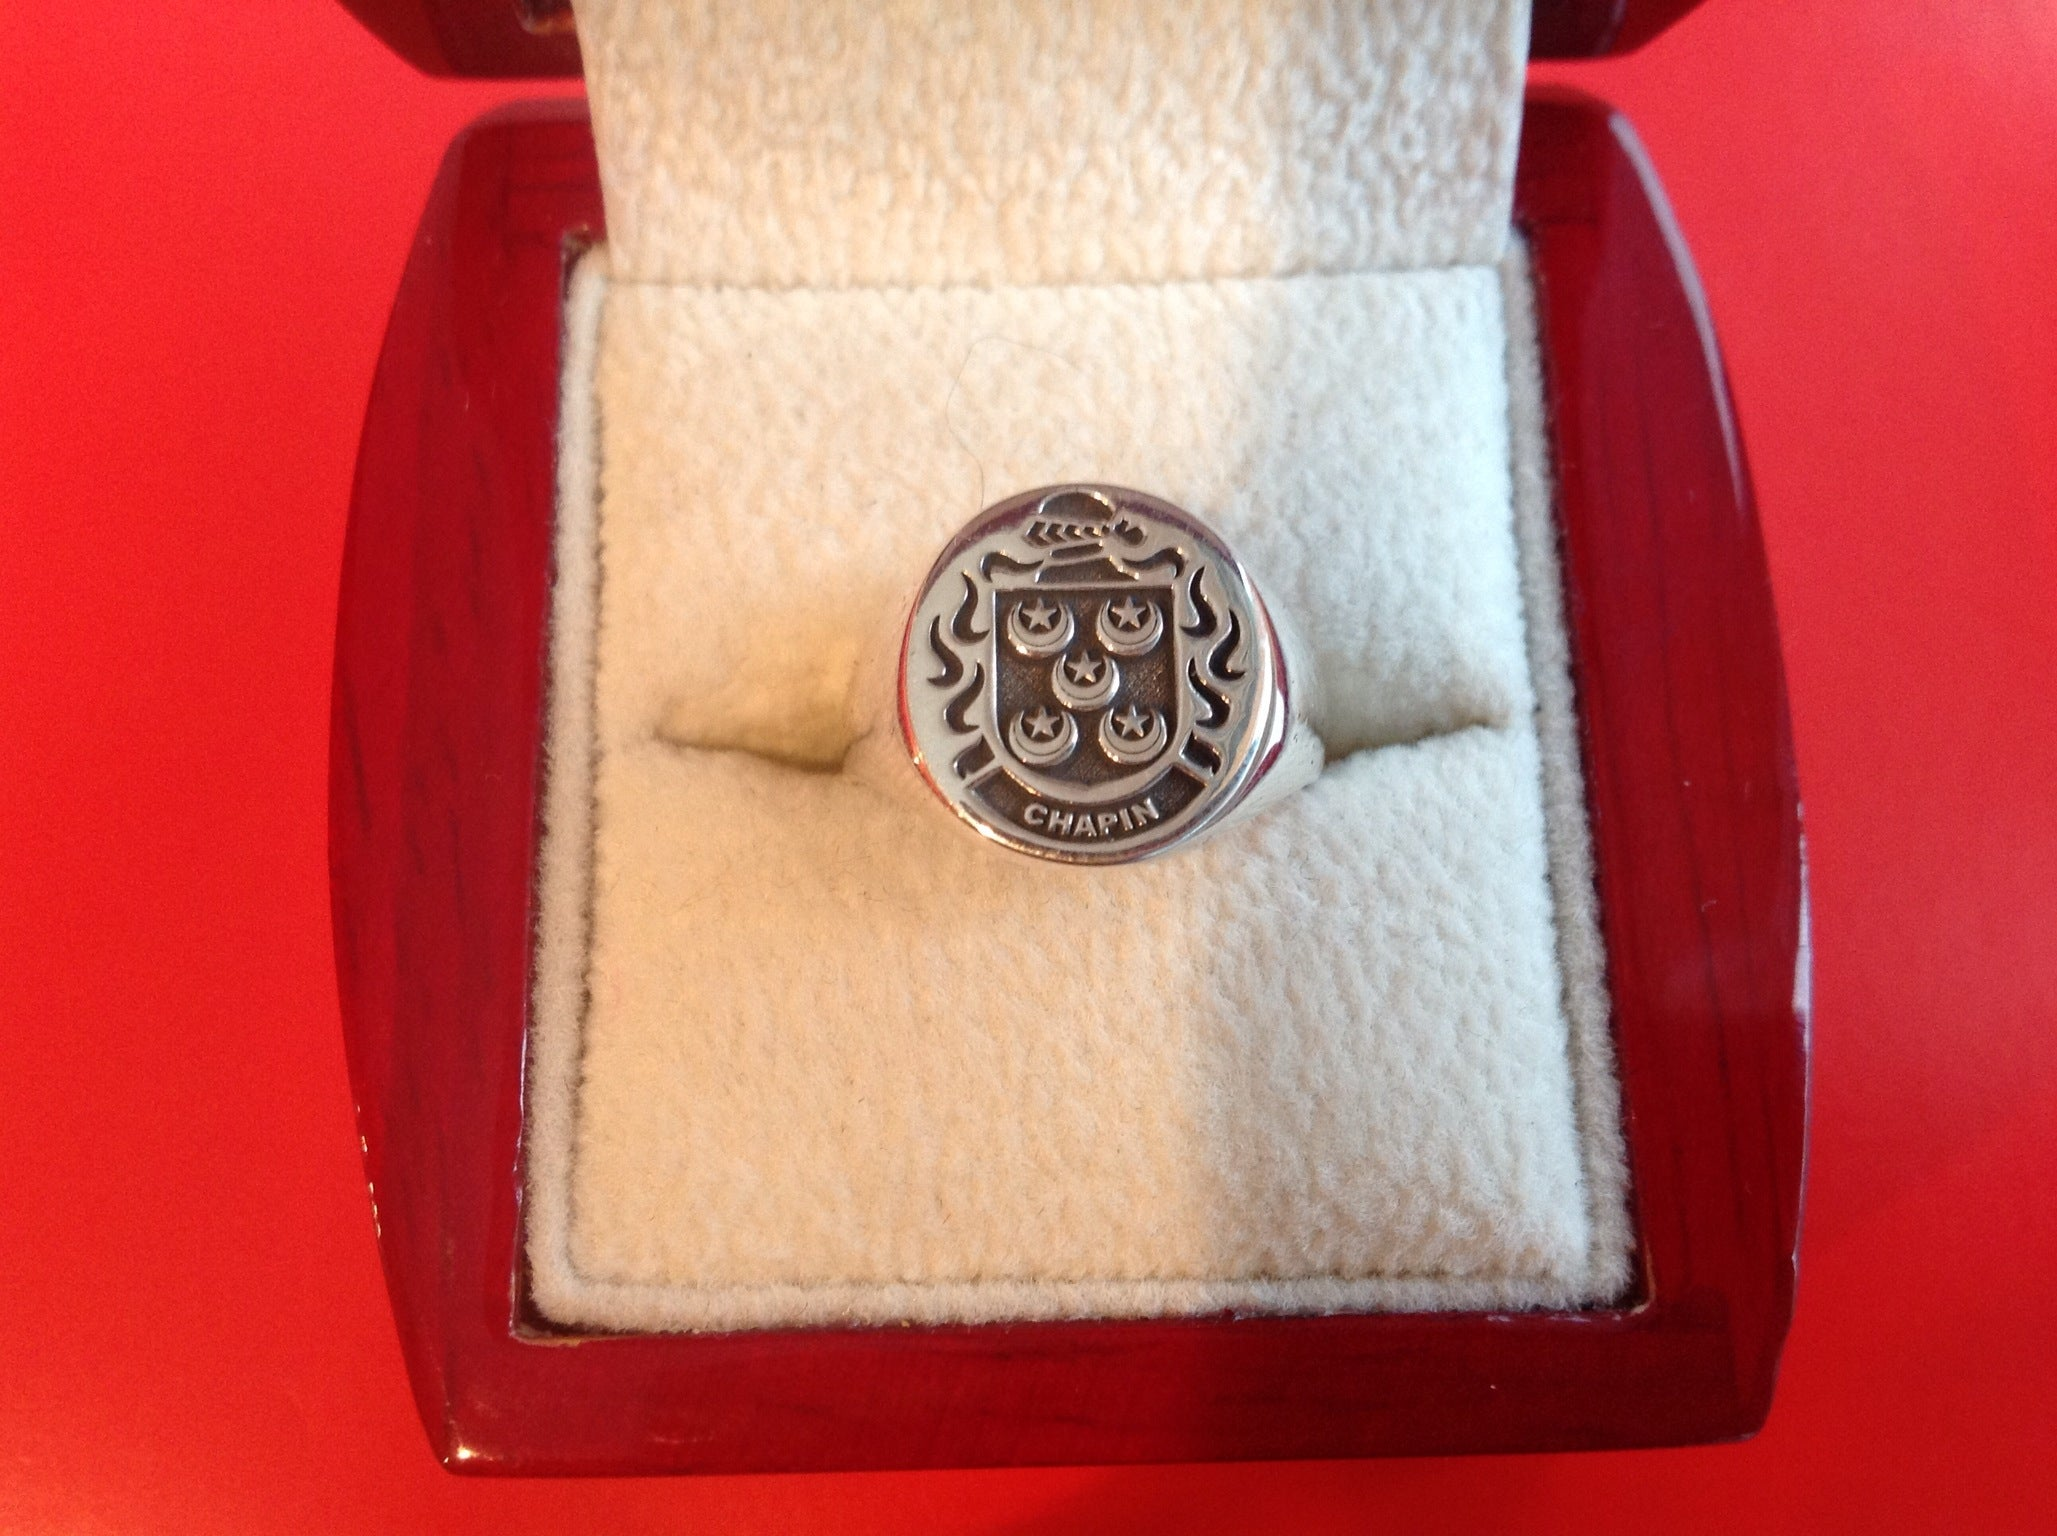 Chapin family crest ring